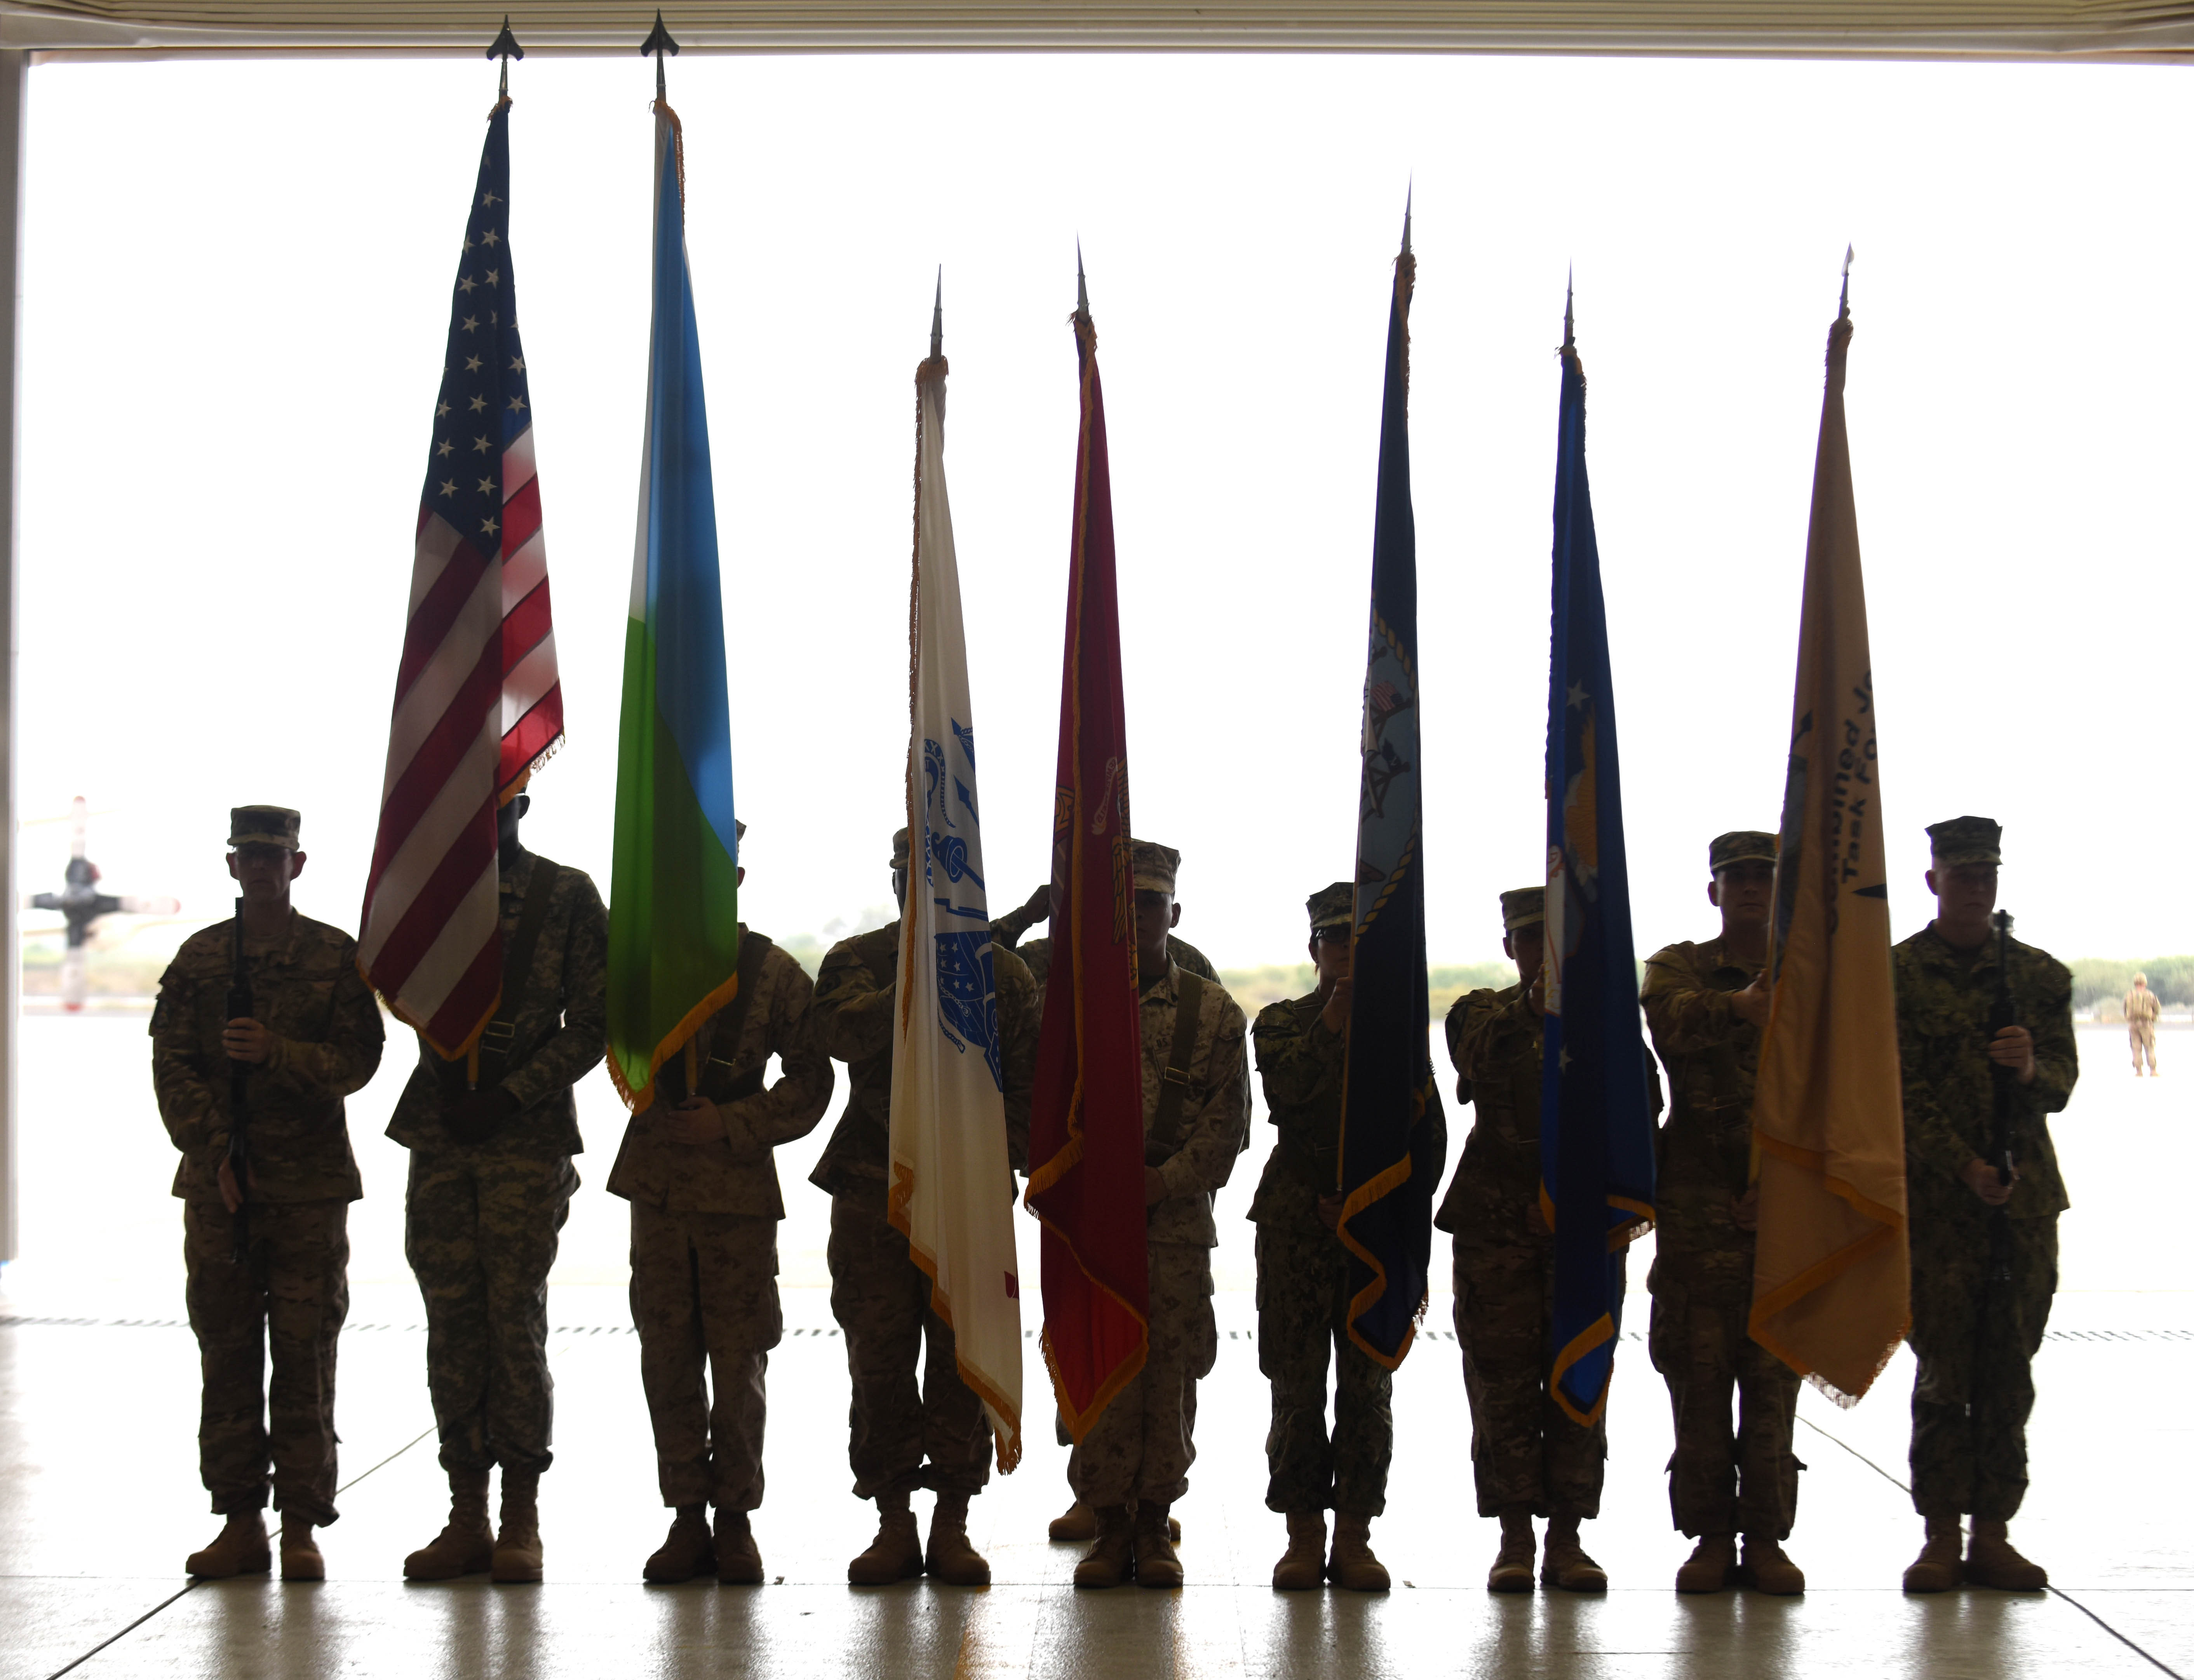 U.S. military members stand in a color guard formation during a change of command ceremony for Combined Joint Task Force-Horn of Africa April 13, 2016, at Camp Lemonnier, Djibouti. The ceremony officially transferred command of the task force from U.S. Army Maj. Gen. Mark Stammer to U.S. Army Brig. Gen. Kurt Sonntag. (U.S. Air Force photo by Staff Sgt. Kate Thornton)